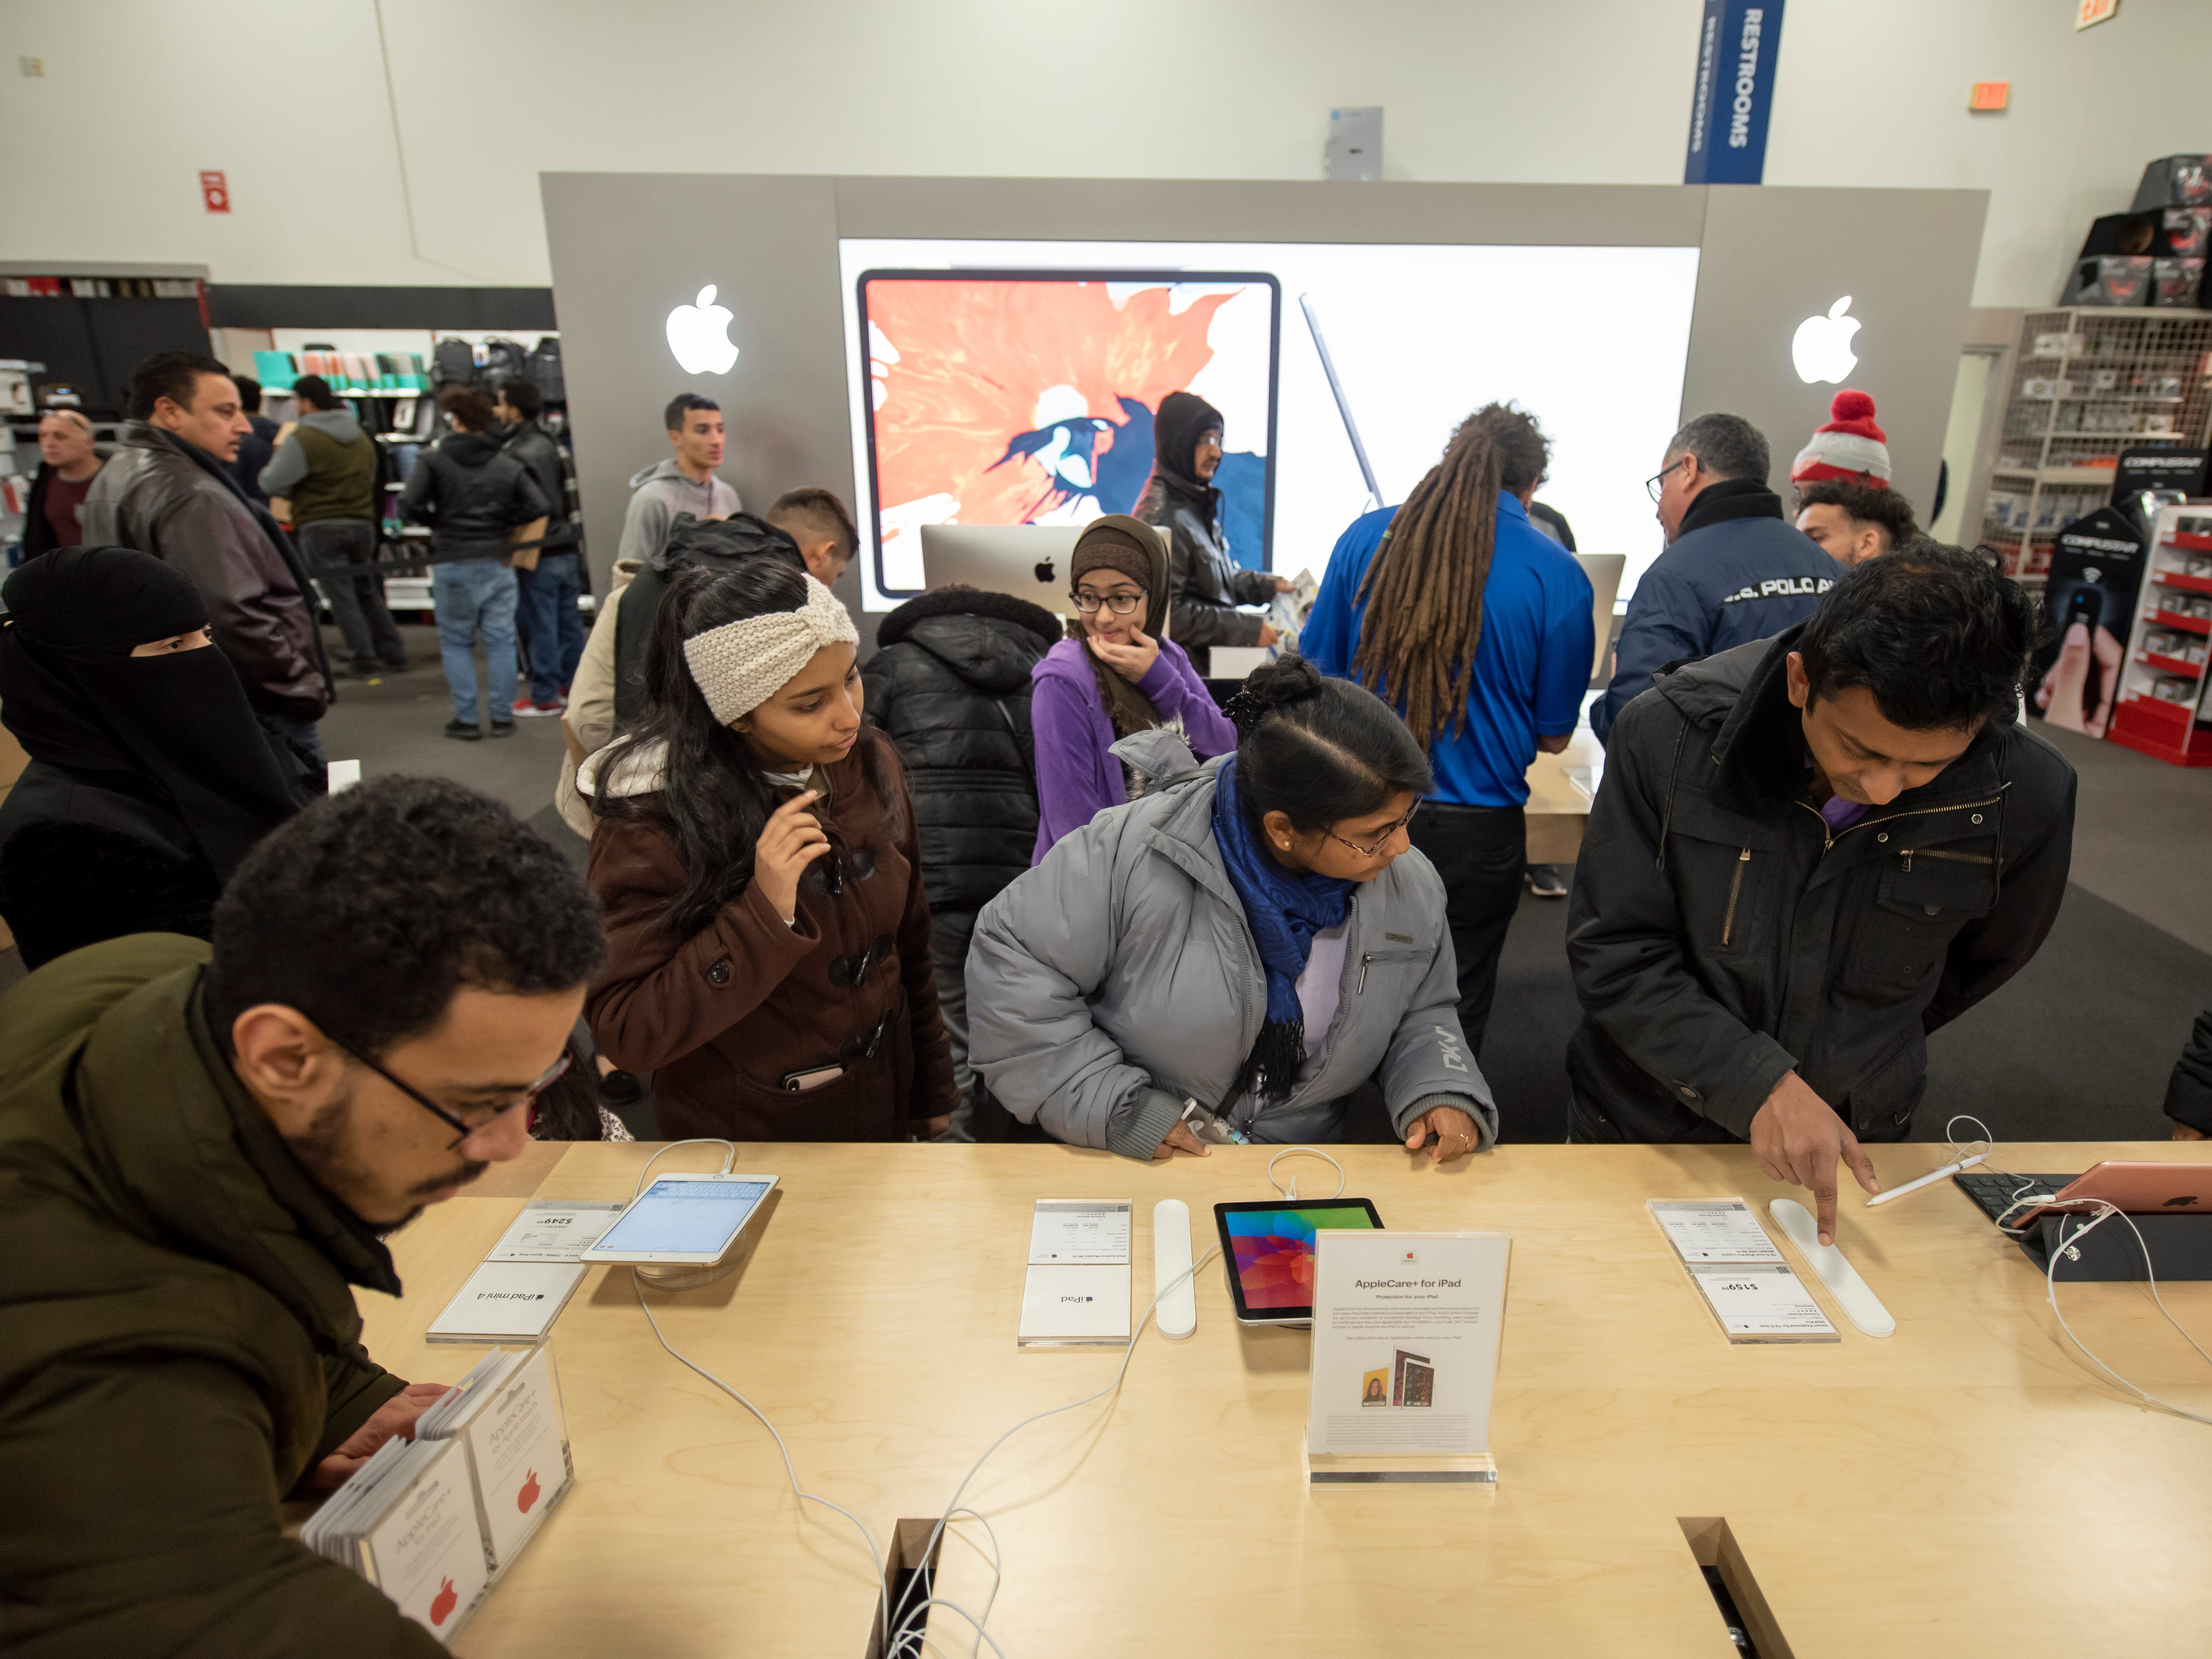 Shoppers look at Apple products during a Thanksgiving evening sale at Best Buy.